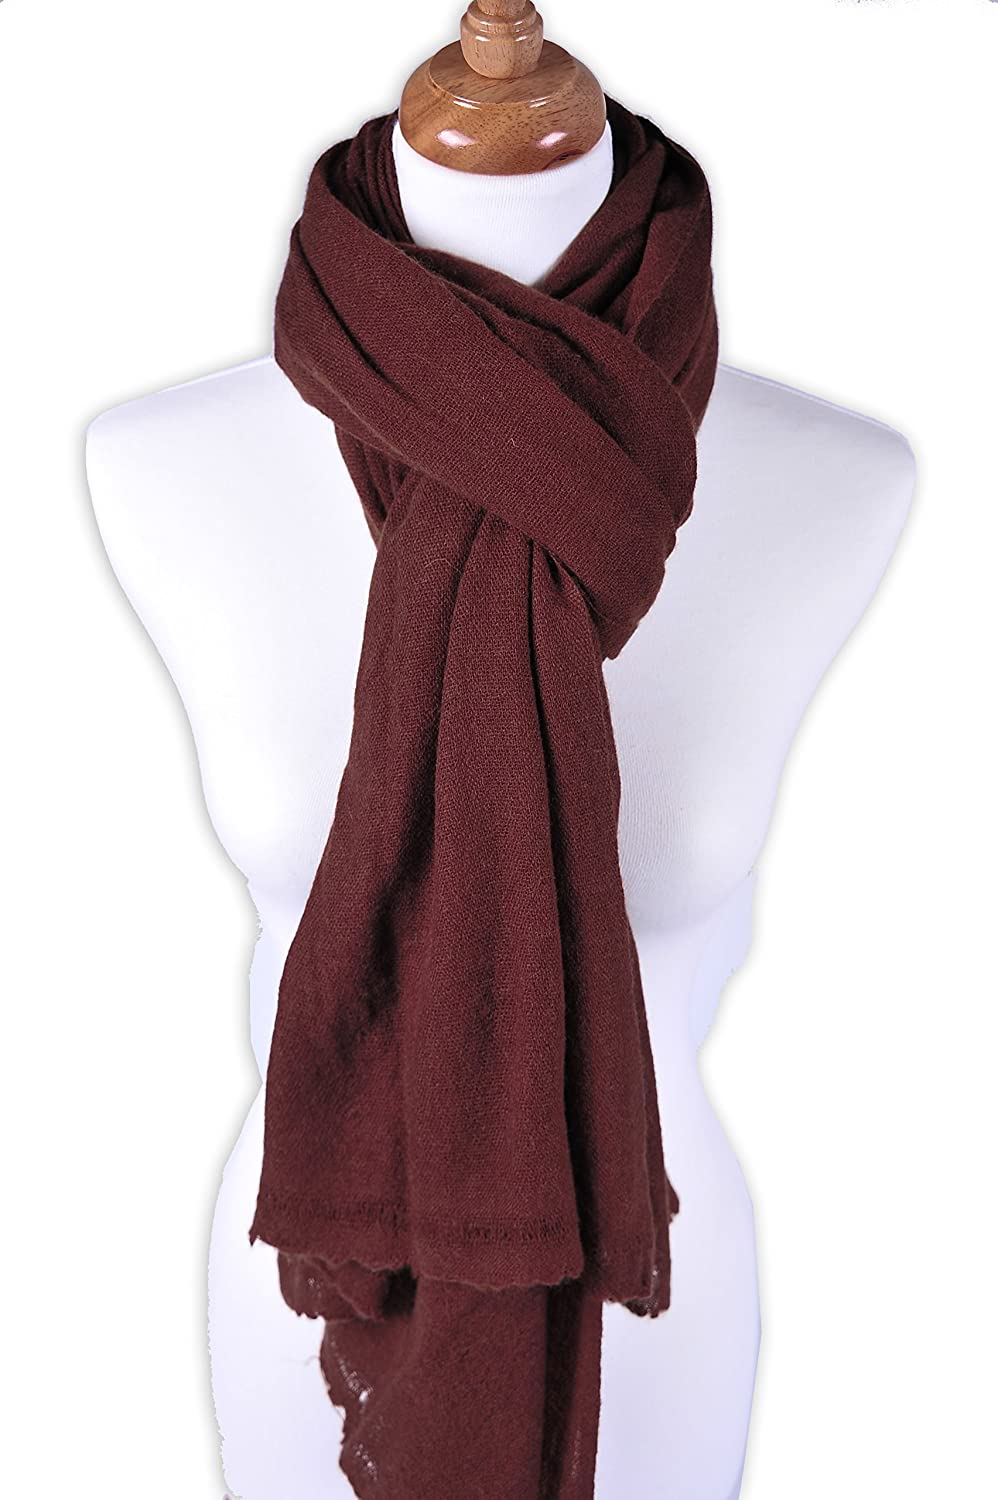 Zentopia classic cashmere blend handmade hand dye scarf in multiple color